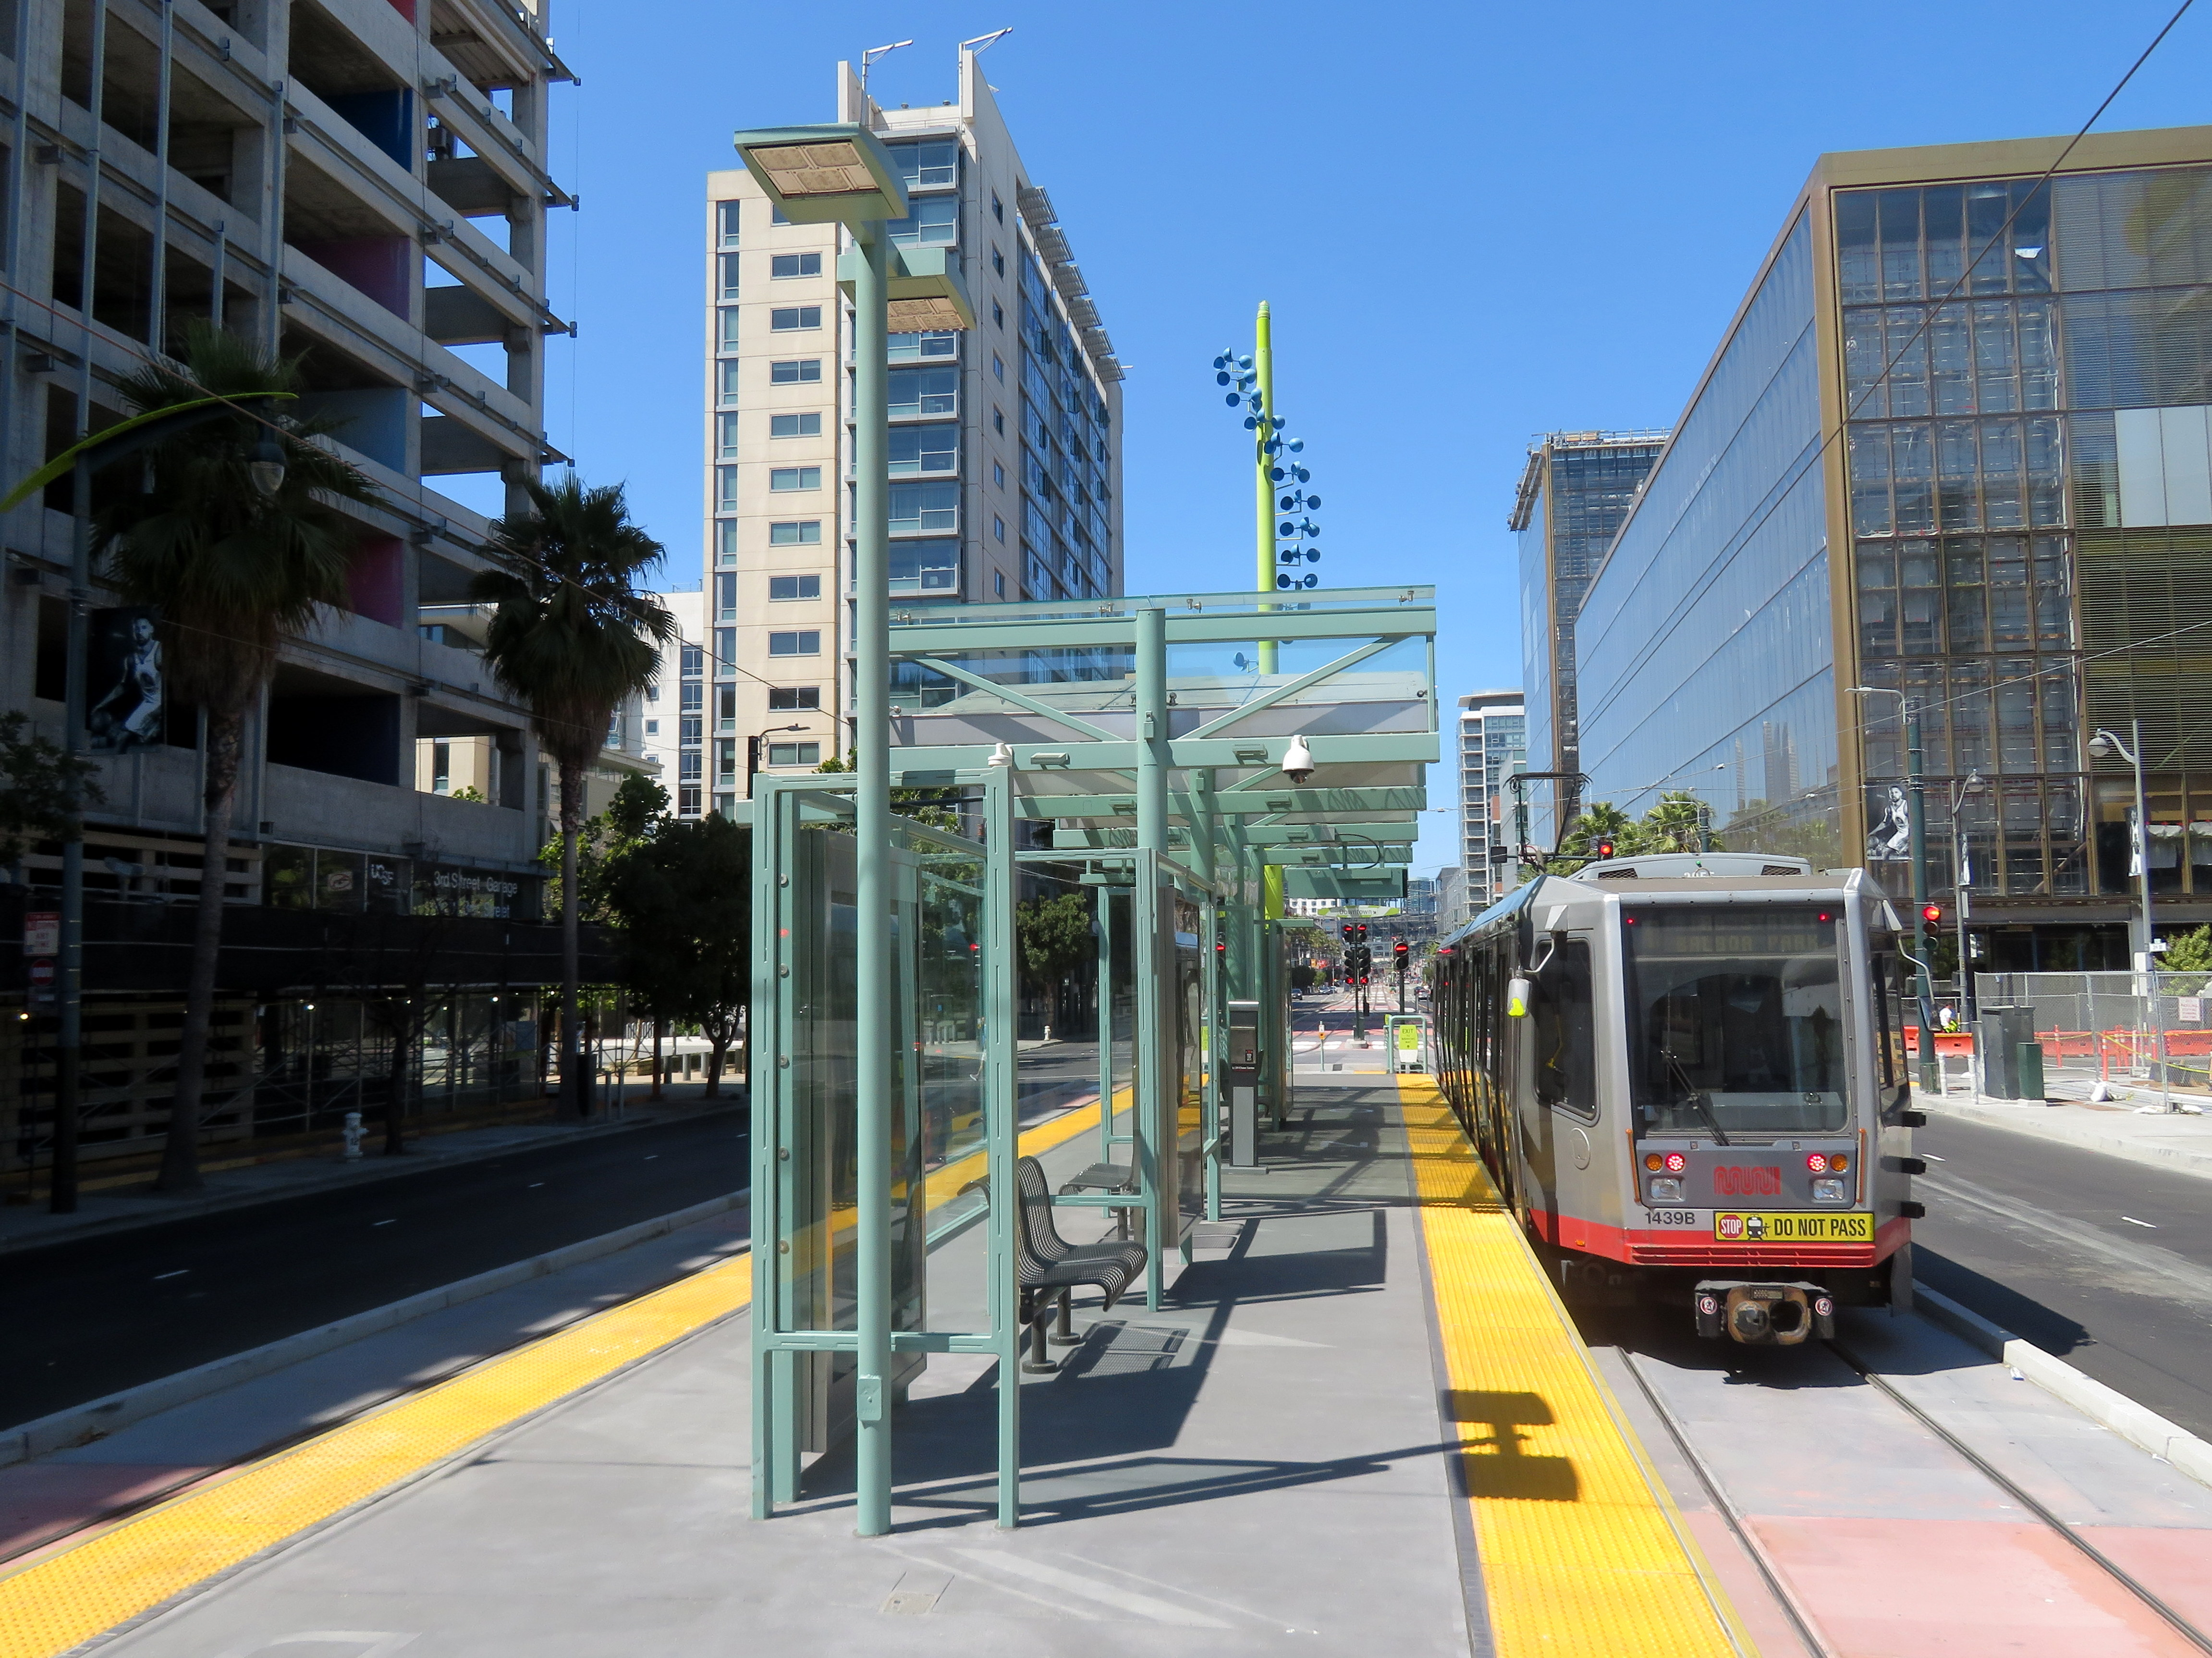 File:Northbound train at UCSF Chase Center station, August 2019 JPG